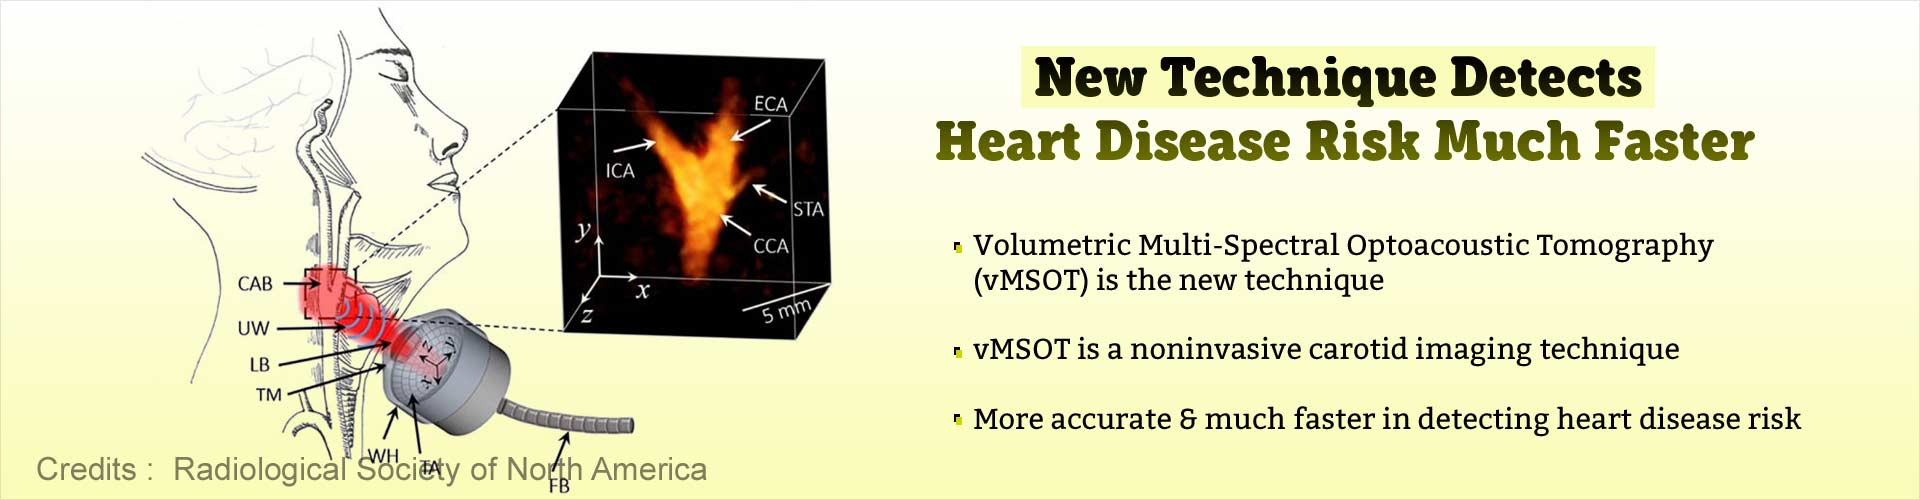 New technique detects heart disease risk much faster. Volumetric Multi-Spectral Optoacoustic Tomography (vMSOT) is the new technique. vMSOT is a noninvasive carotid imaging technique. More accurate and much faster in detecting heart disease risk.